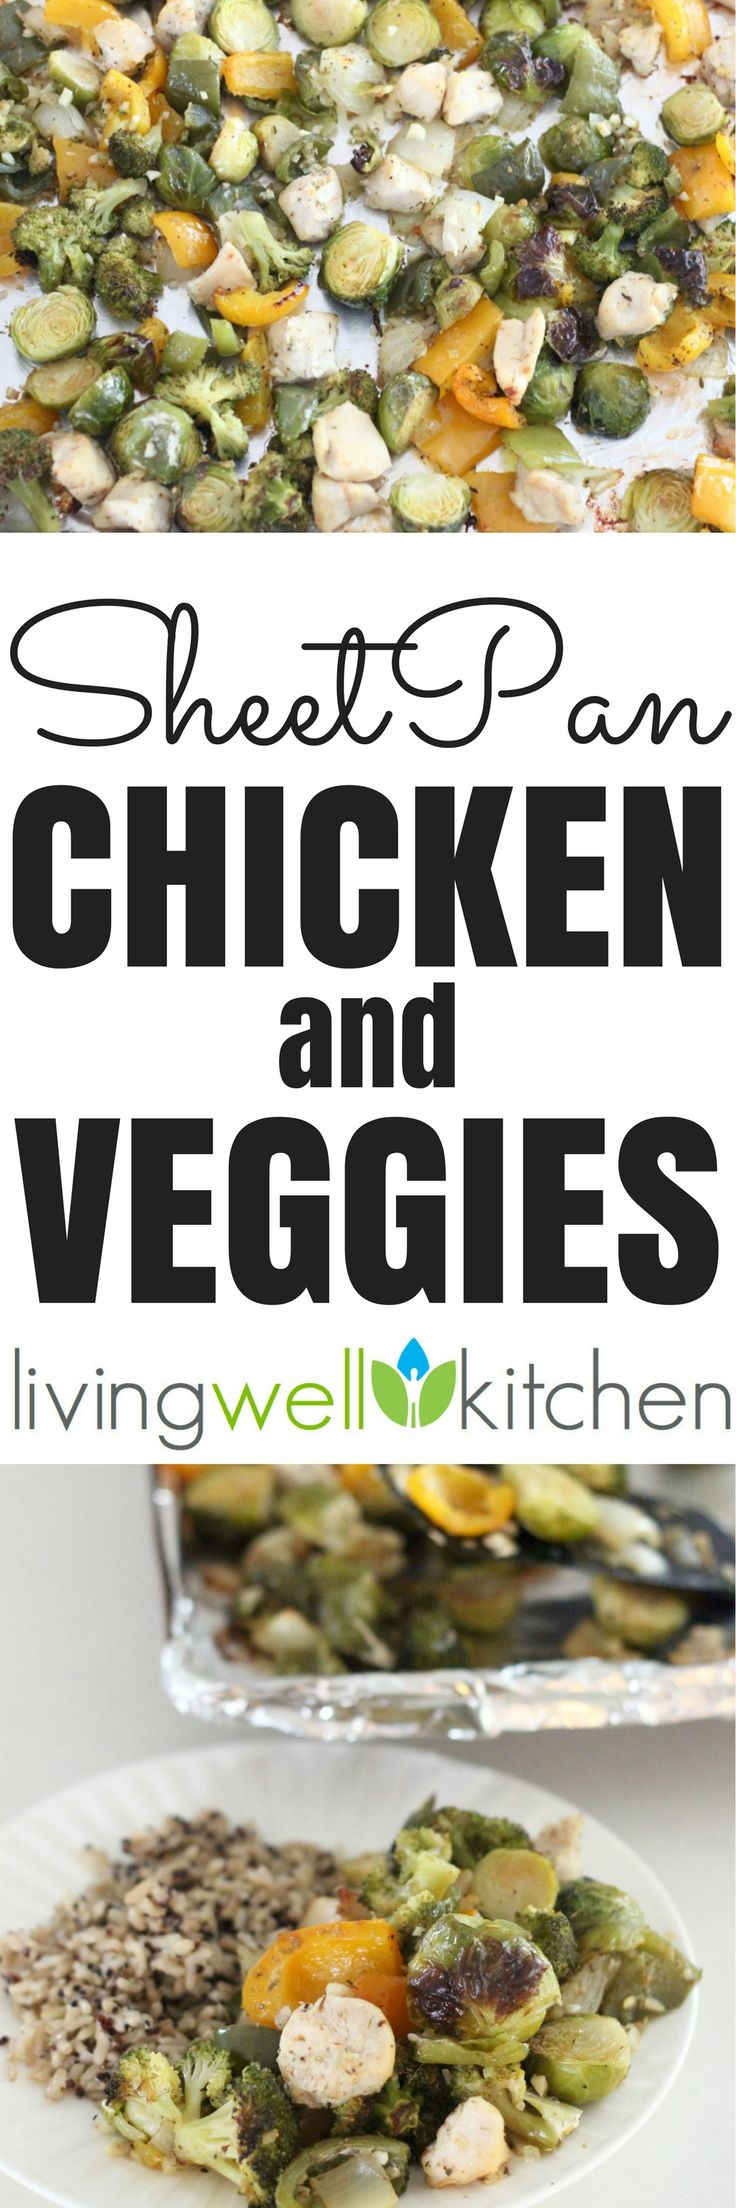 All the ingredients for this Sheet Pan Chicken & Veggies from @memeinge are cooked on one baking sheet, so you have less hands on time and less clean up! Gluten free, dairy free recipe perfect for an easy dinner